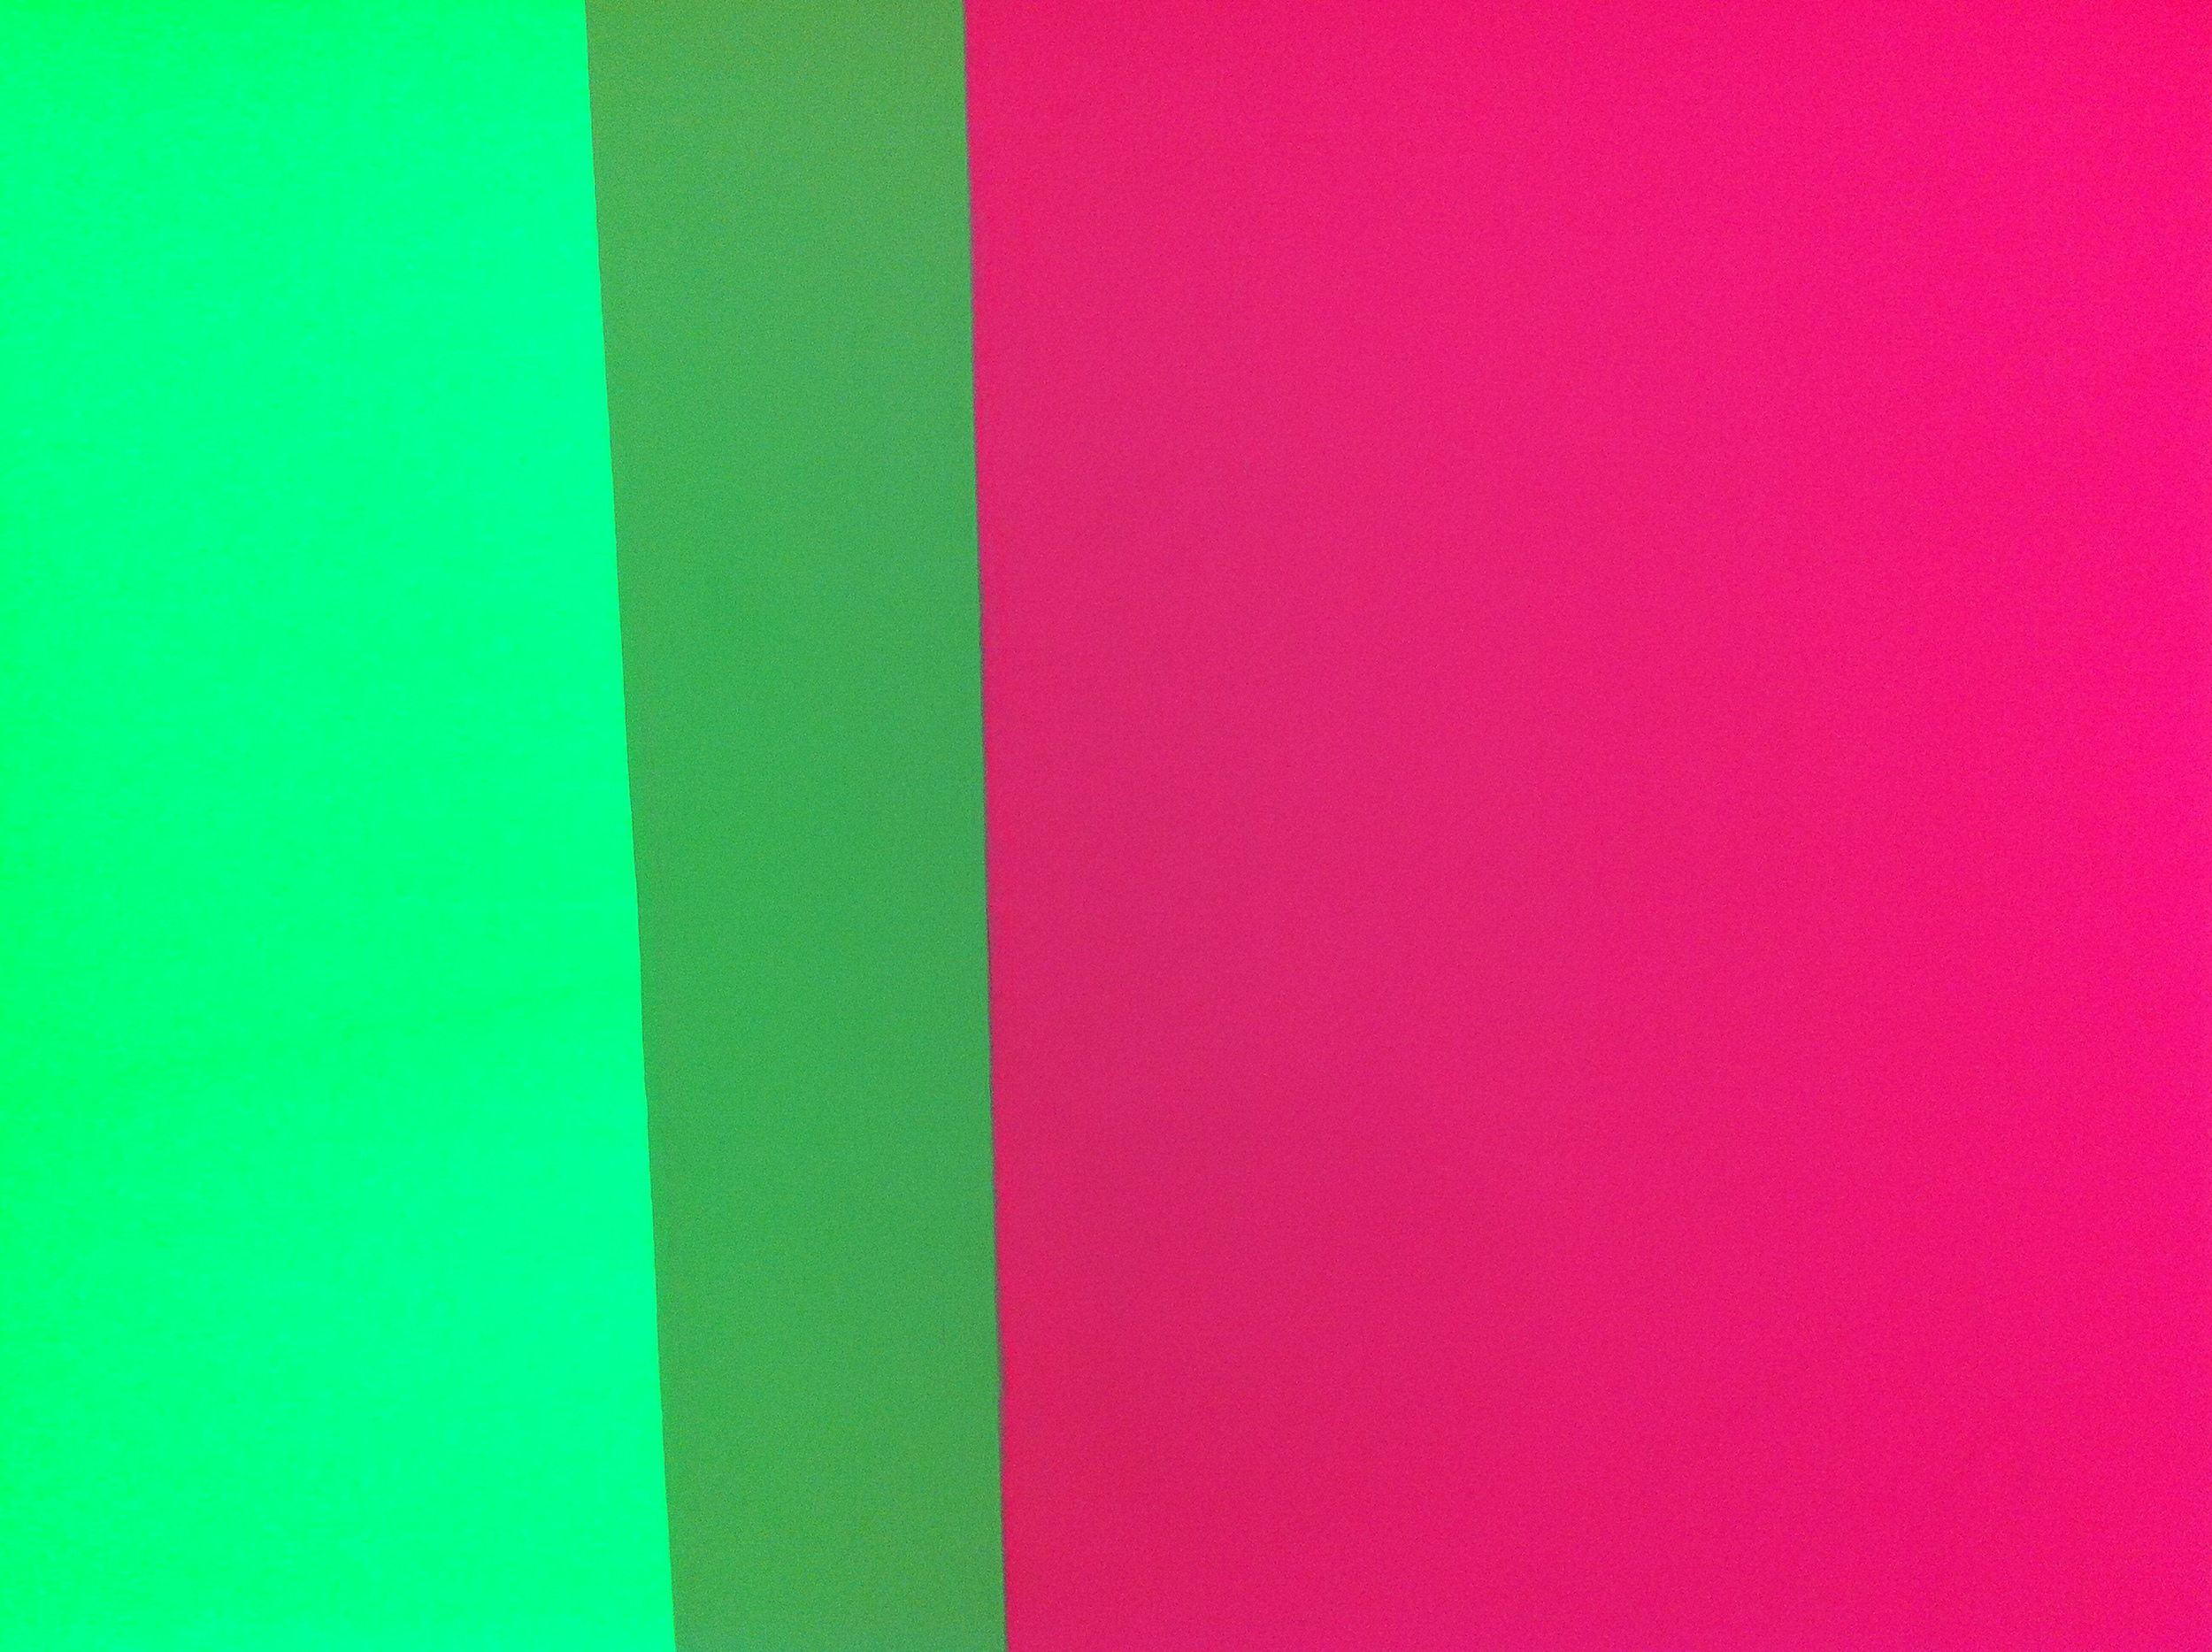 Photographing light. Contradictory but here it is. Carlos Cruz-Diez. Brilliant.